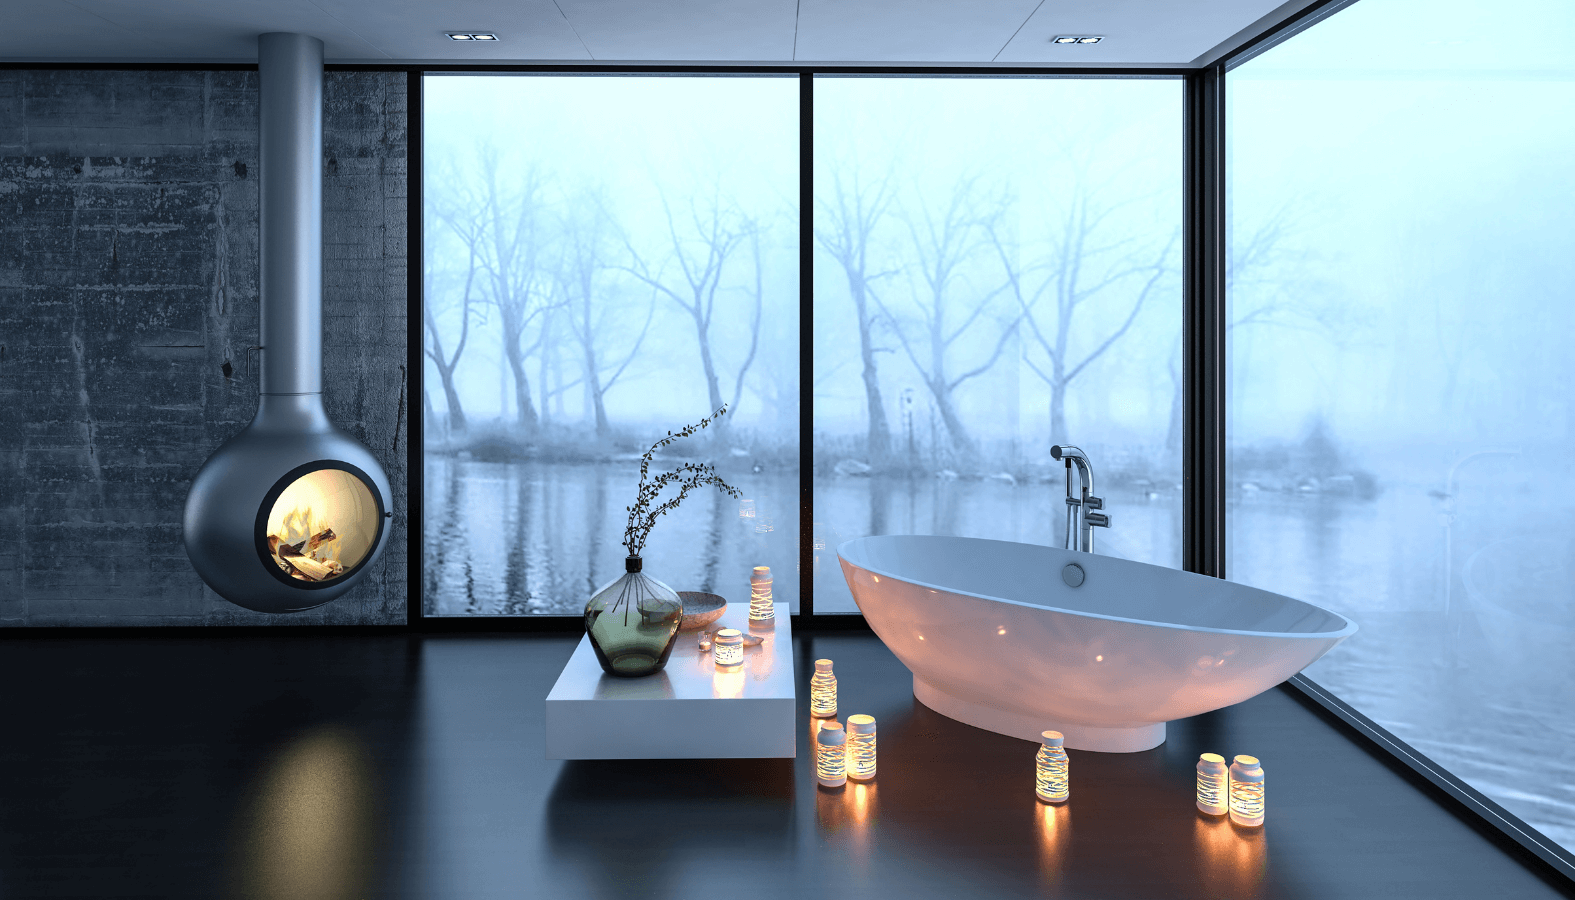 8 Brilliant Master Bathroom Ideas That Look Magical Create Your Dream Remodeling And More Nasoni Better For You The Planet Blog